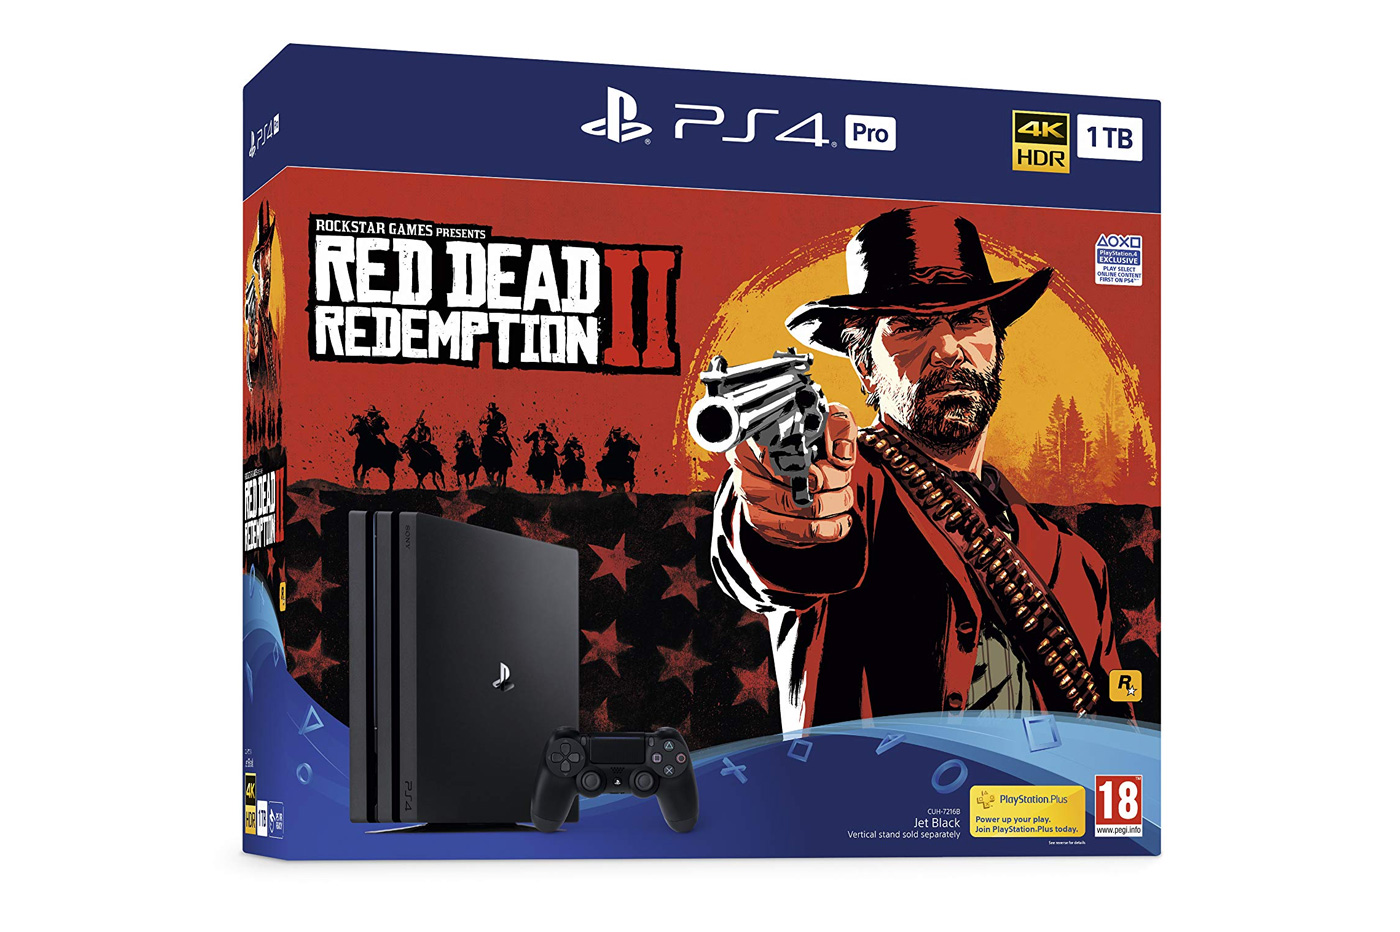 PS4 Pro Red Dead Black Friday